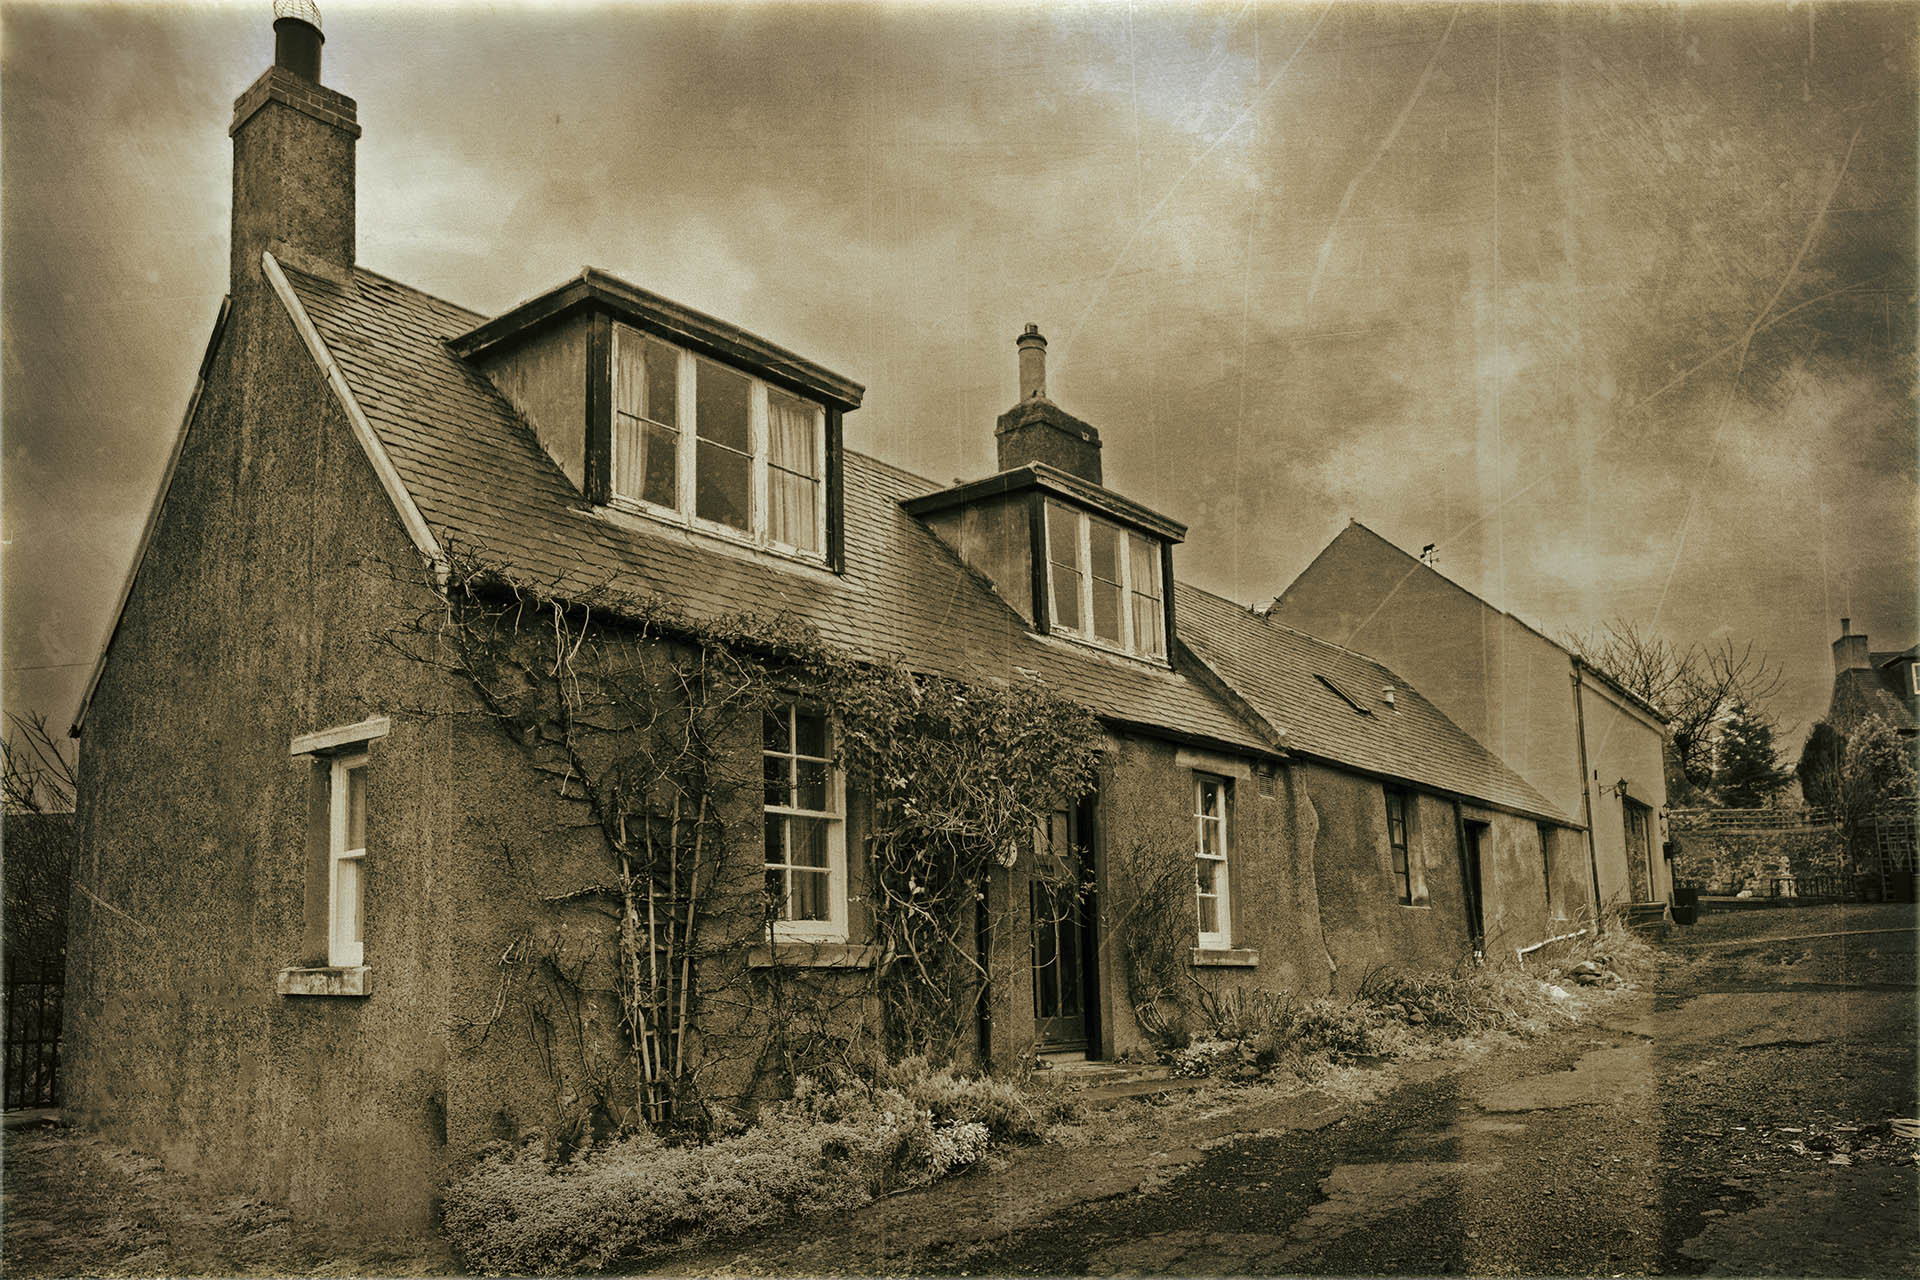 'Thimble Raw', Morebattle where Davidson and his family probably lived at the time of the 1851 Census. These are perhaps the original houses. There would have been no 'dormer' windows in the attics, the roofs would have been thatched, not slated and the ground floor windows would almost certainly have been smaller. Otherwise, nothing has changed!